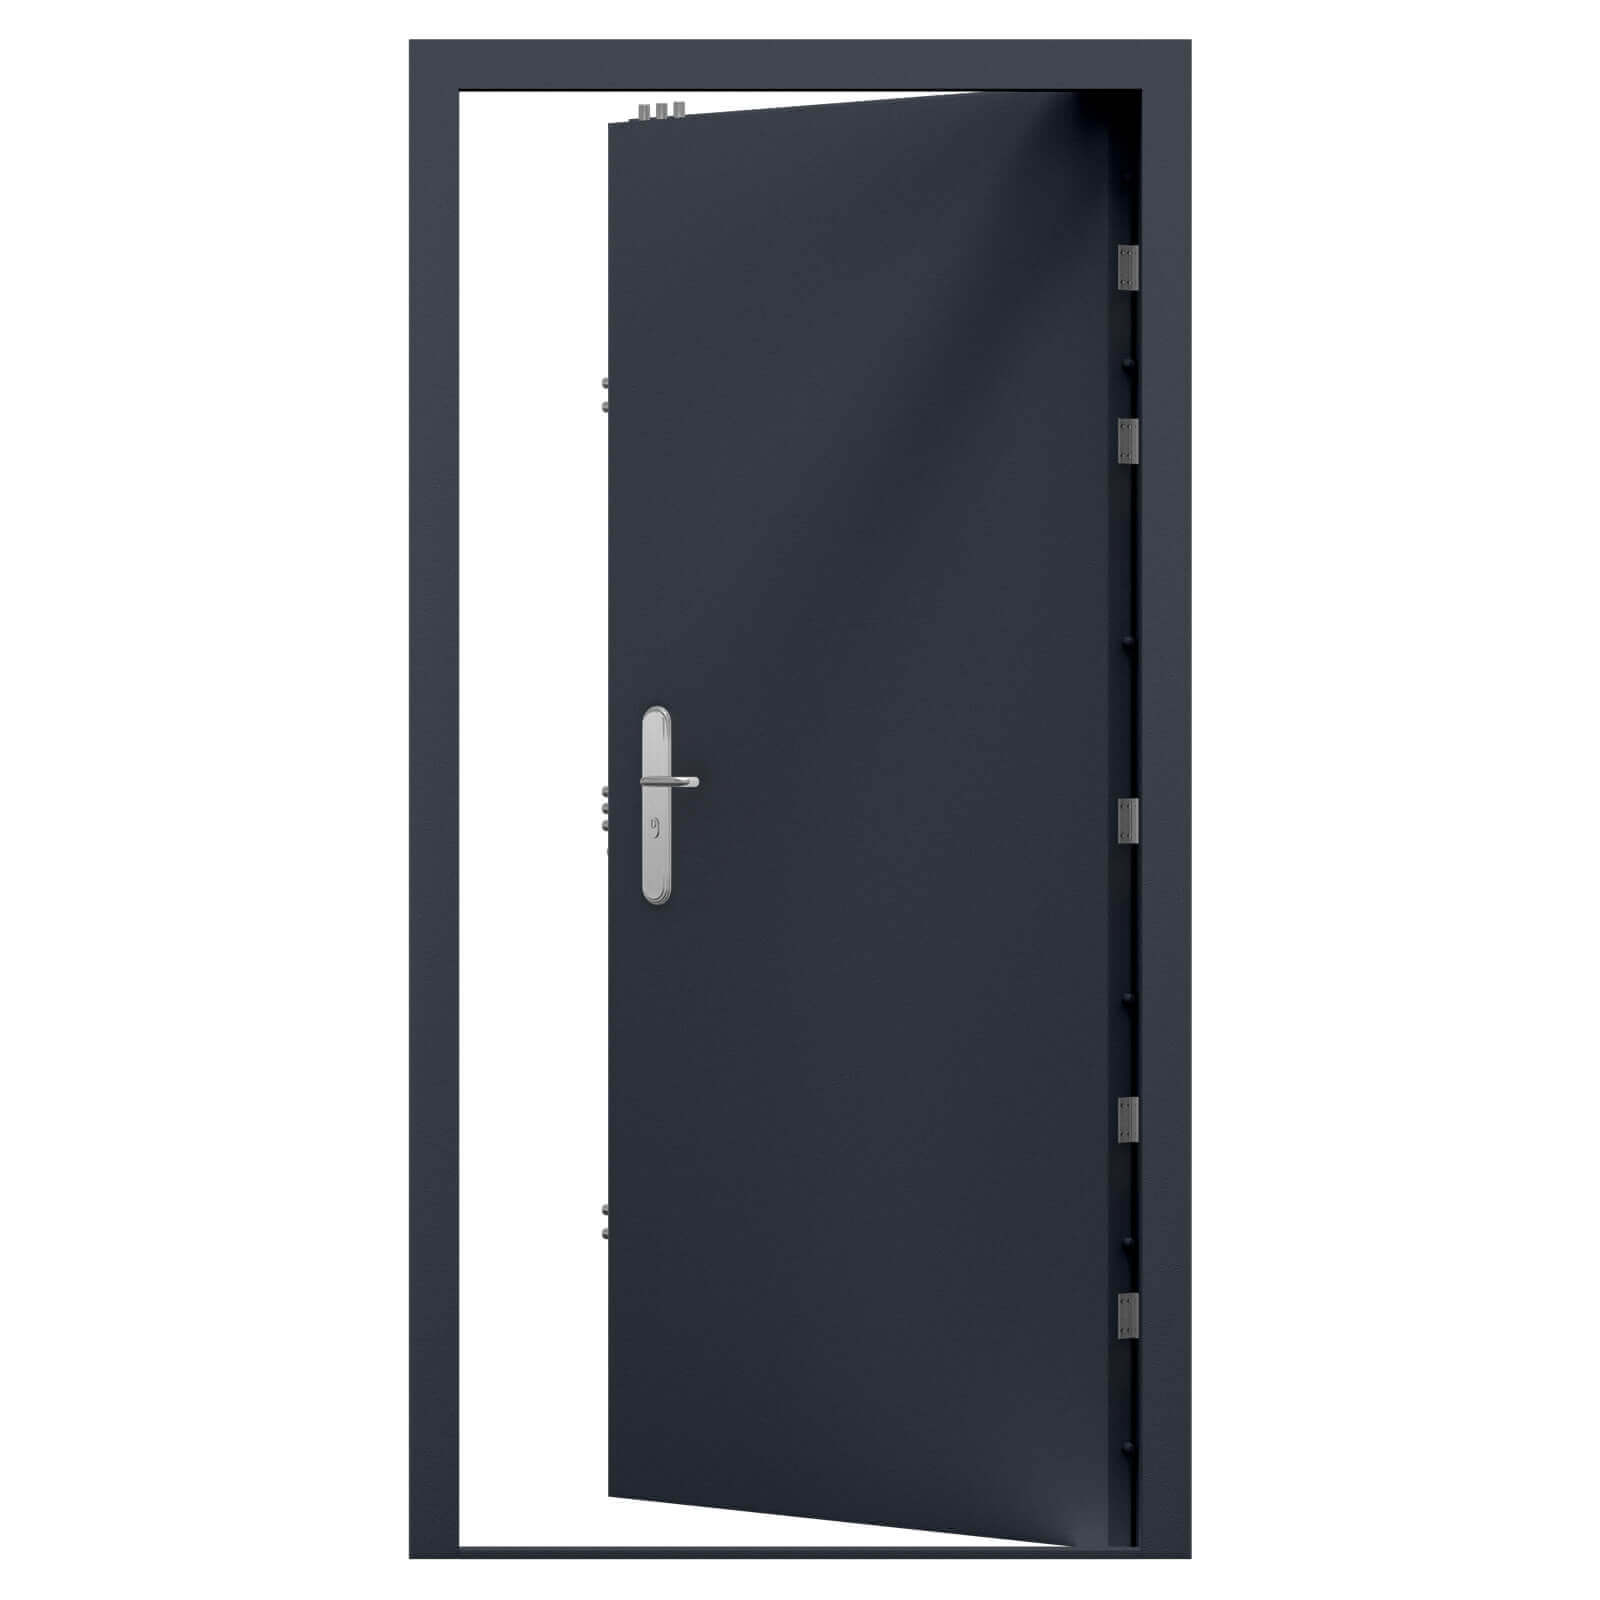 Security Steel Door - Ultra Duty | Latham's Steel Doors